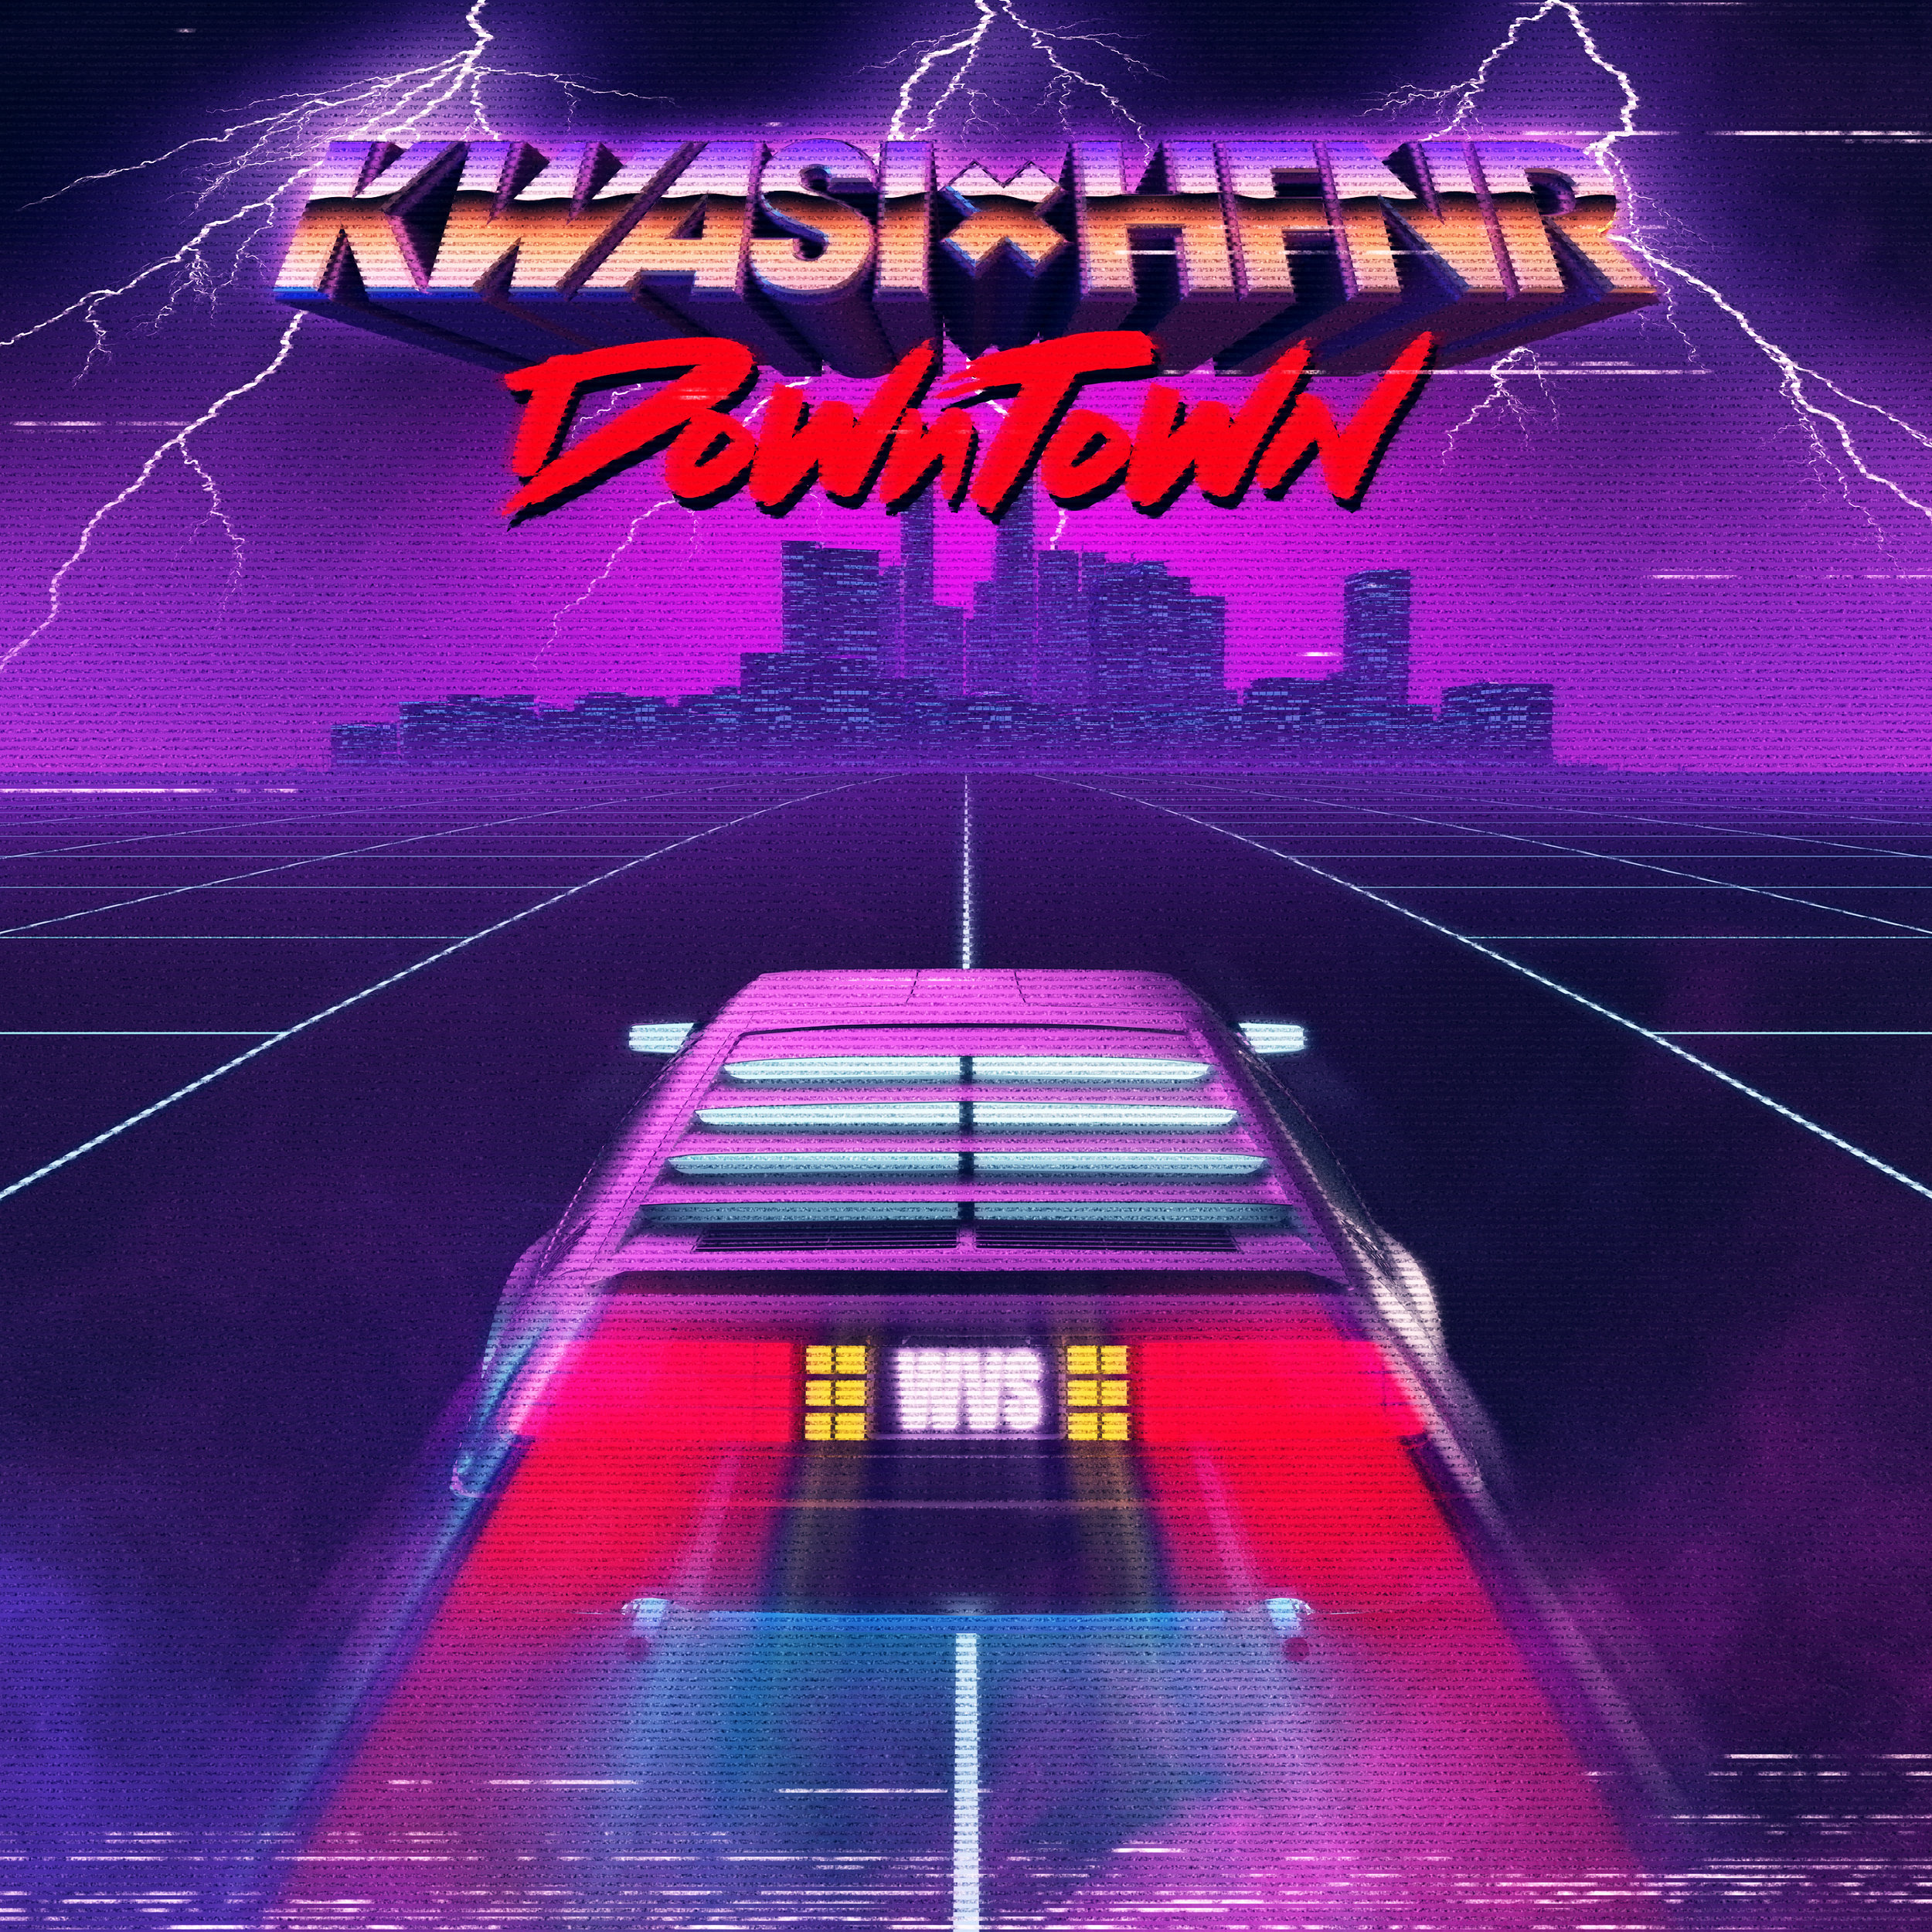 WVS023 - Kwasi x HFNR - Downtown - Artwork.jpg